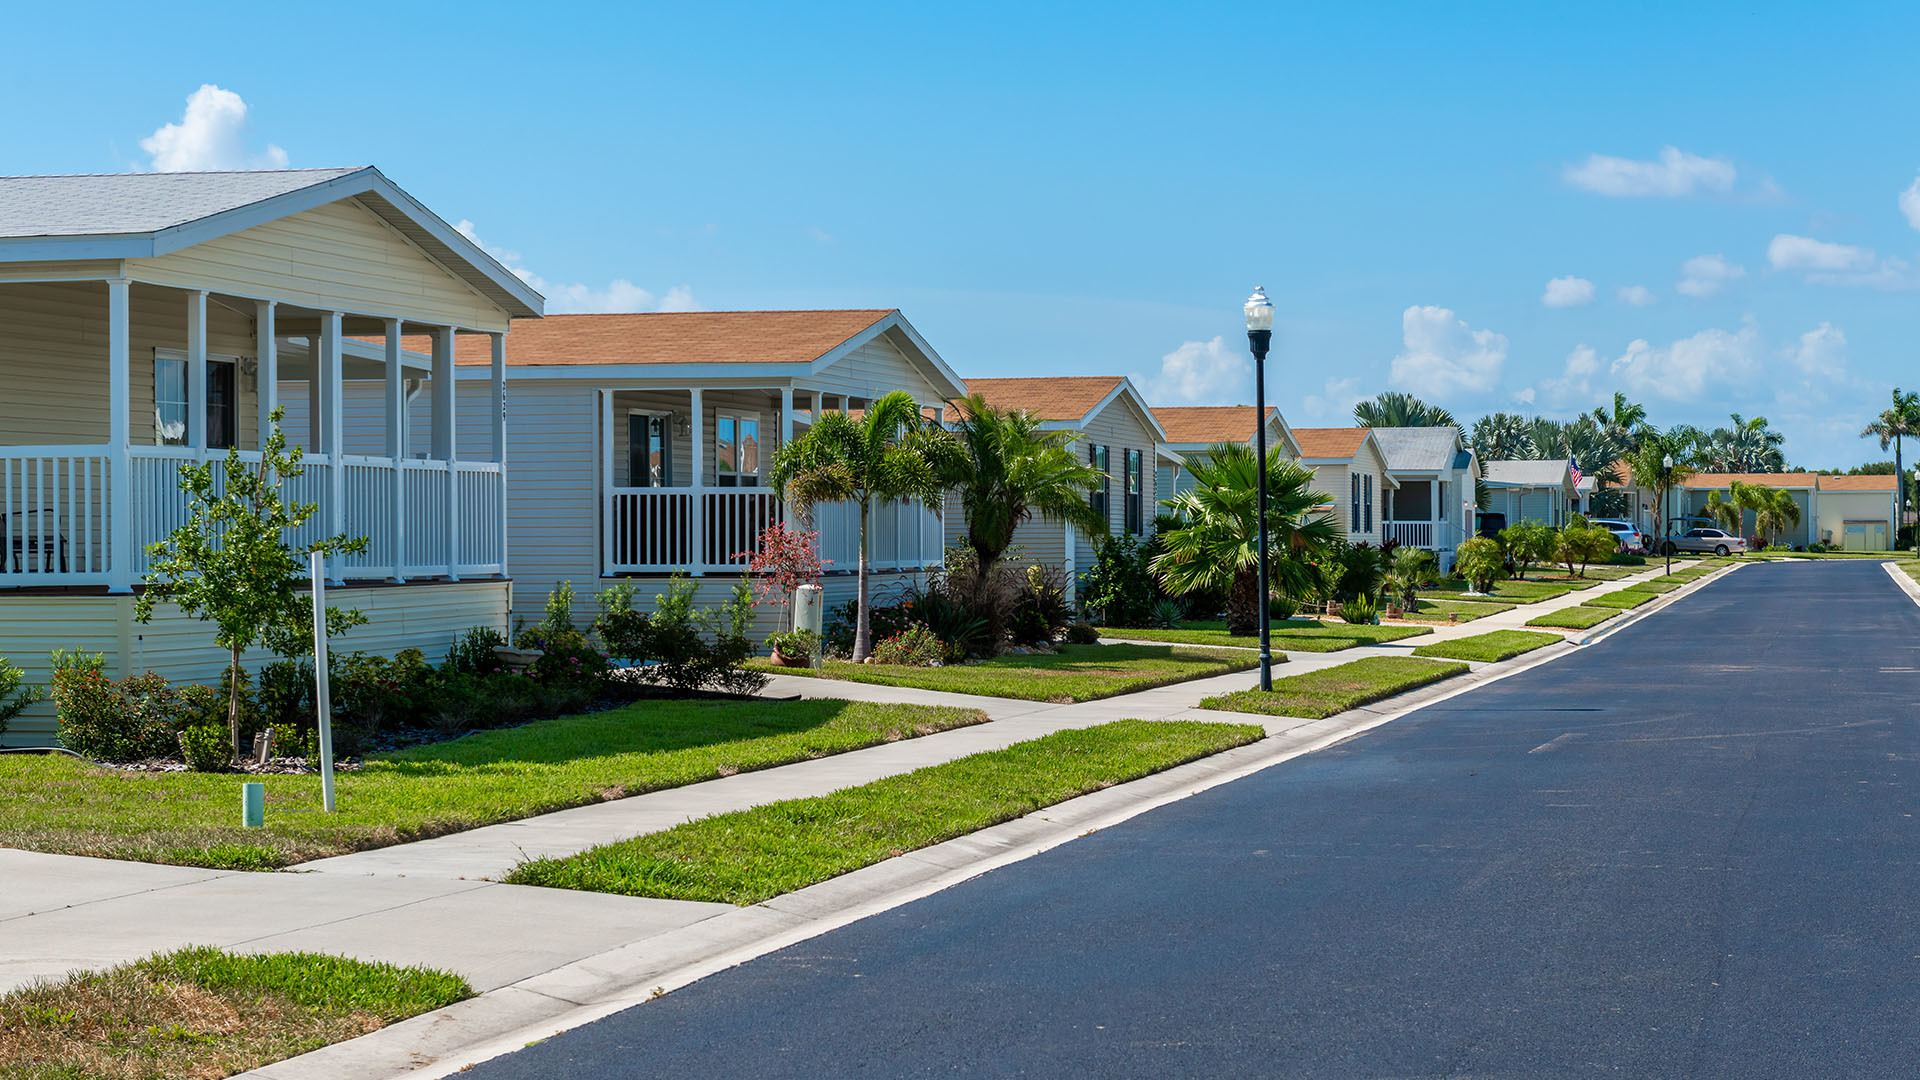 Riverside Club 55+ Golf, Marina and Manufactured Homes Community Street View in Ruskin, FL